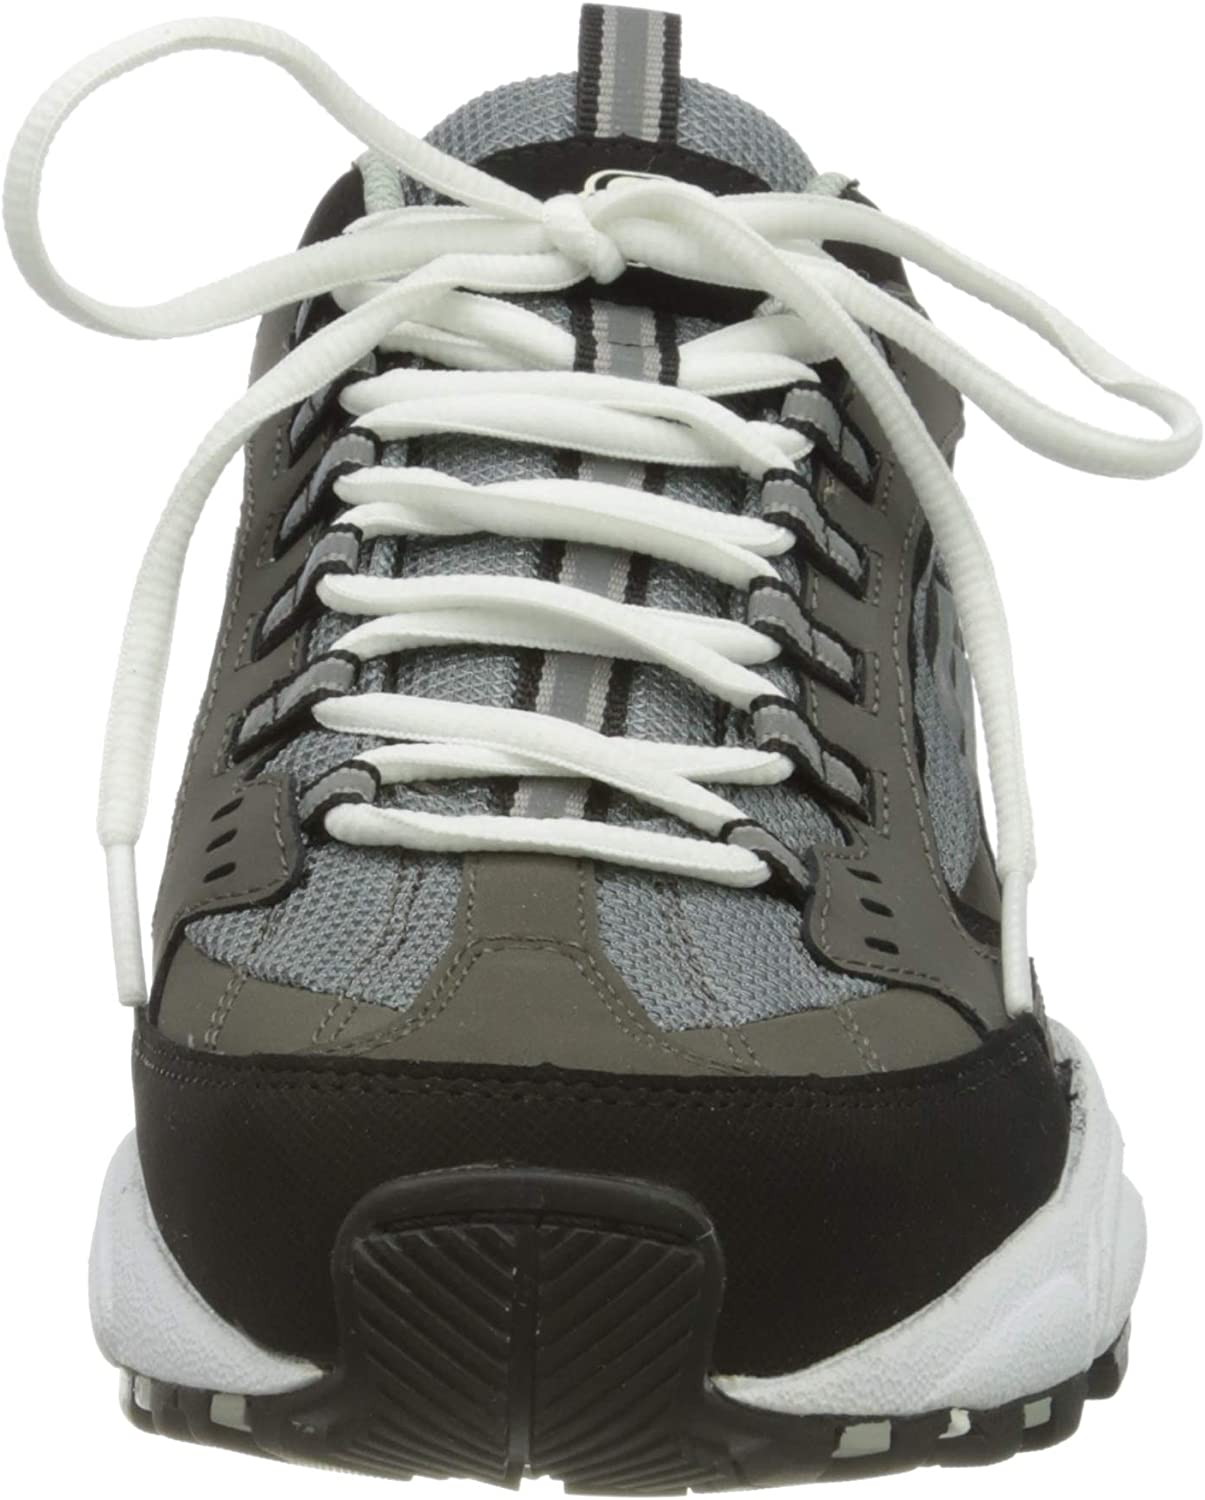 Skechers Stamina Cutback, Baskets Homme Gris Charcoal Leather Mesh Red Trim Ccrd